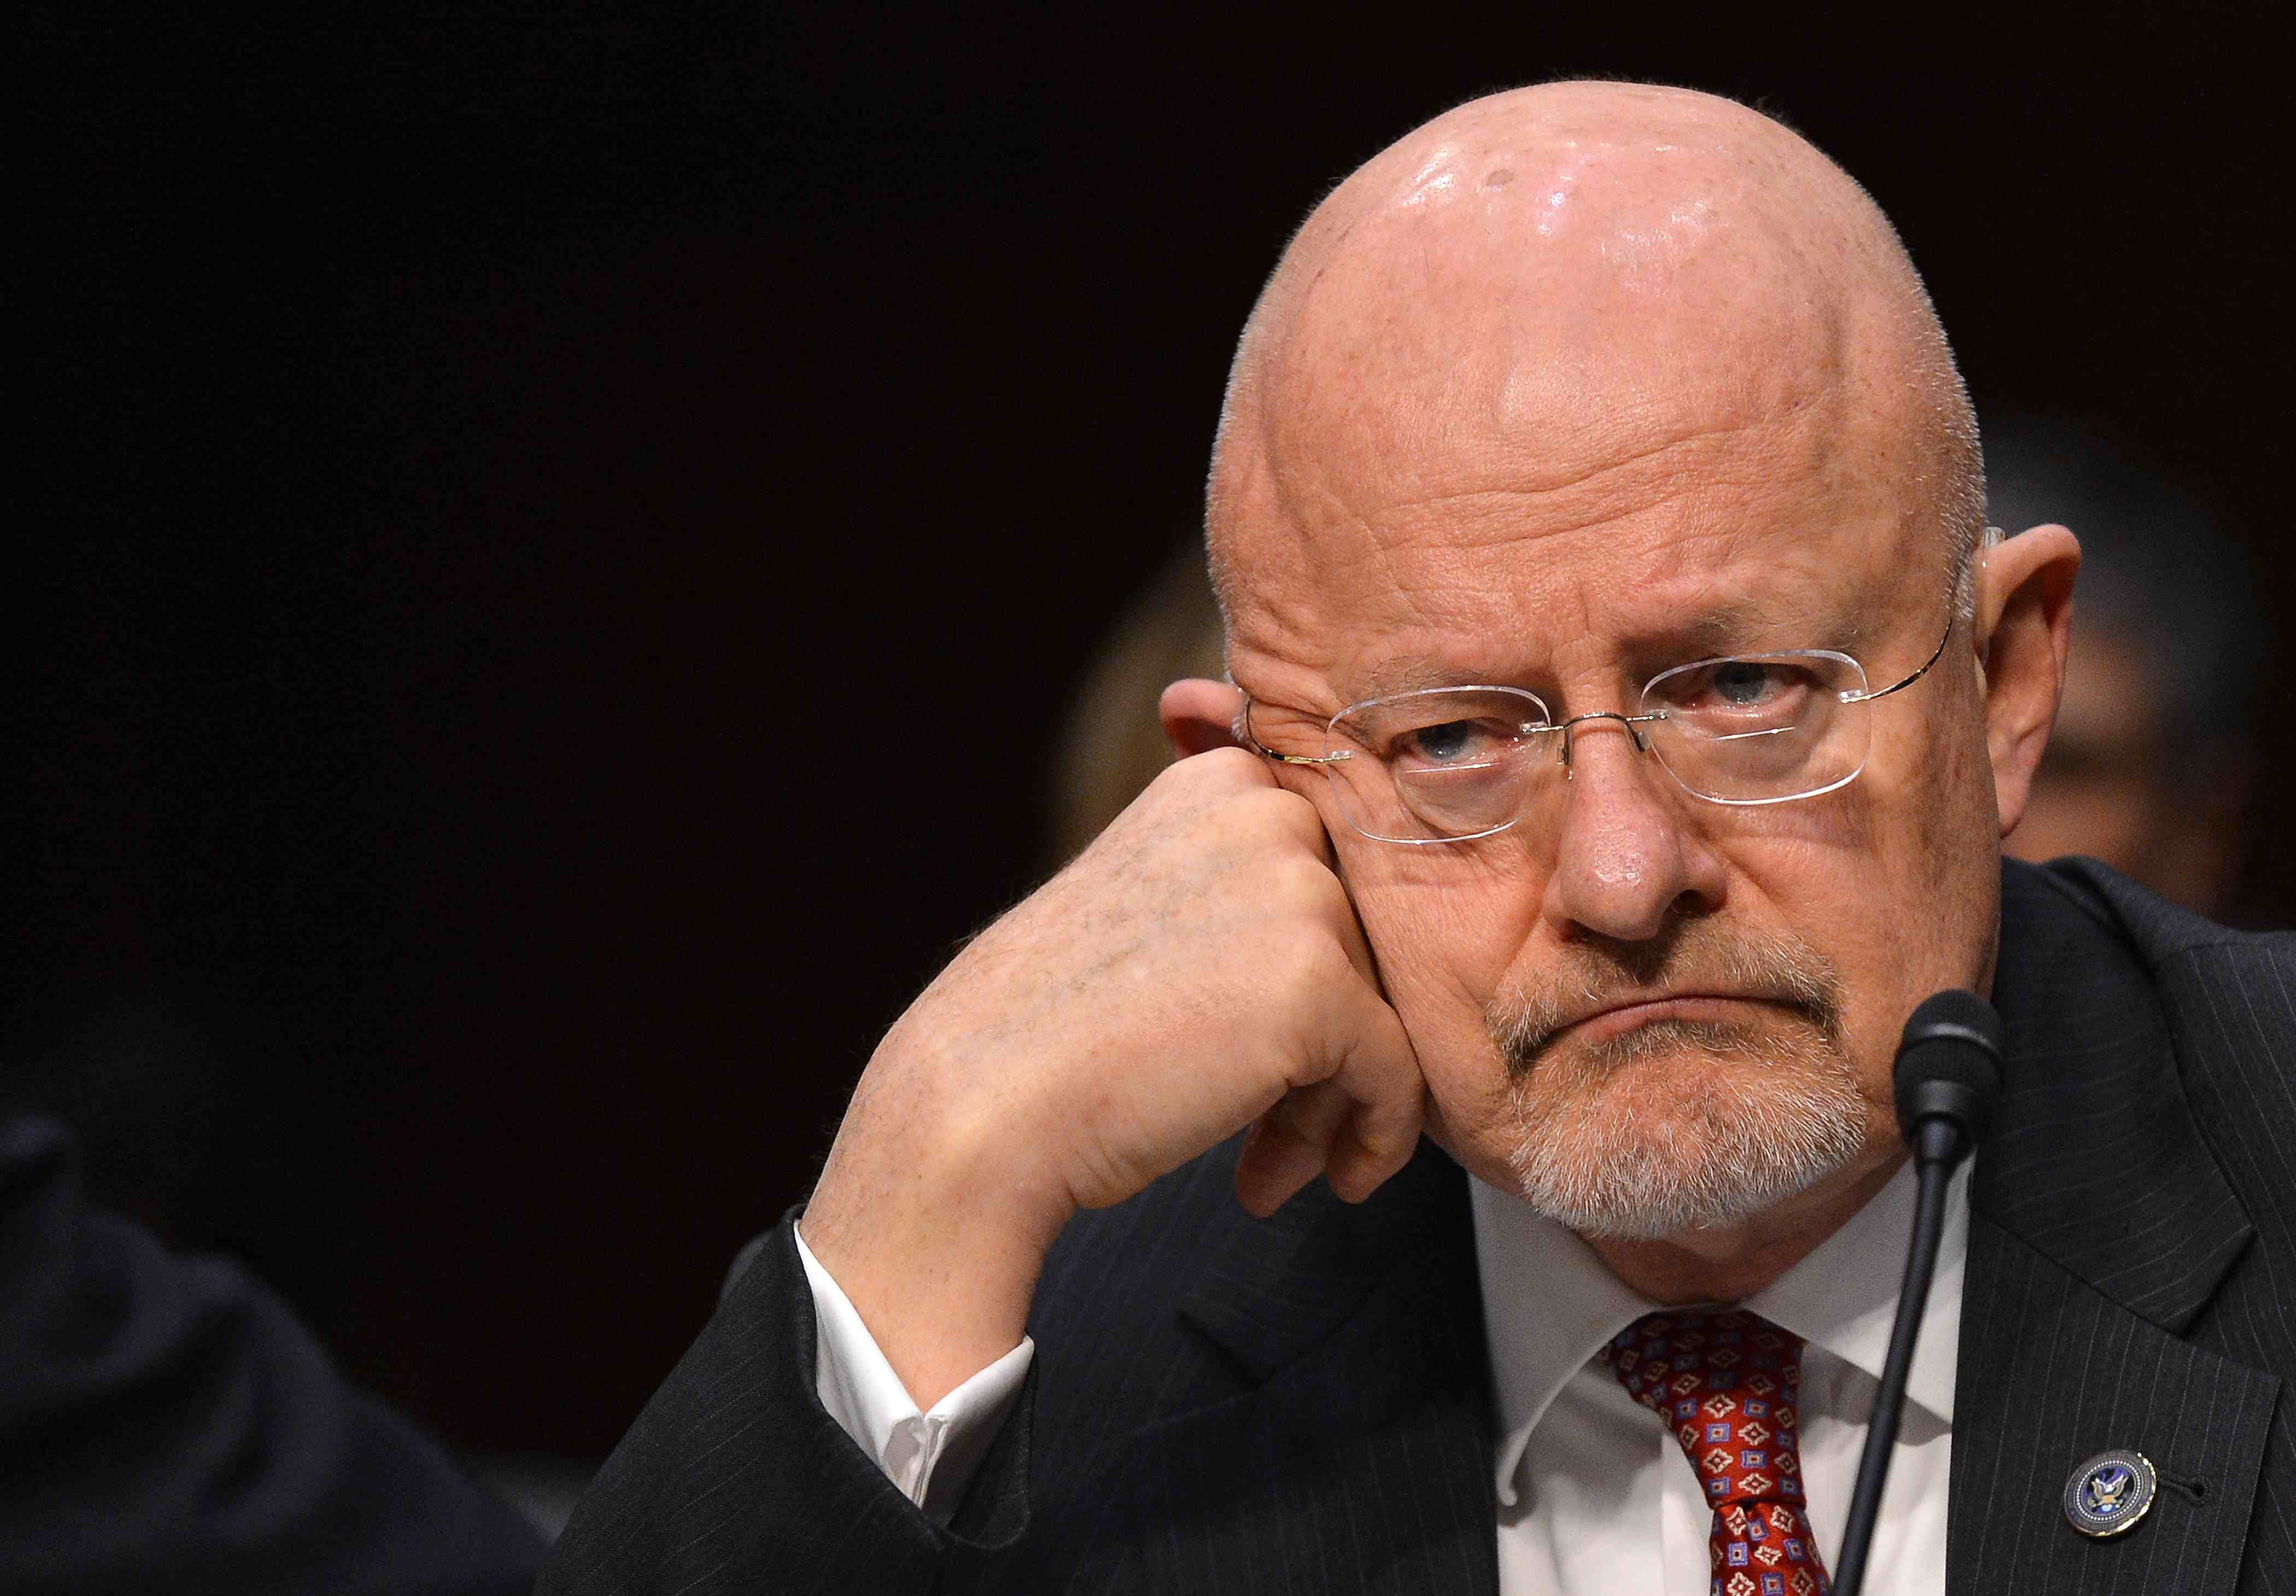 """Director of National Intelligence James Clapper, in a March file photo, denied that NSA analysts snoop on Americans' communications without """"proper legal authorization,"""" but did not say what """"proper legal authorization"""" might be."""